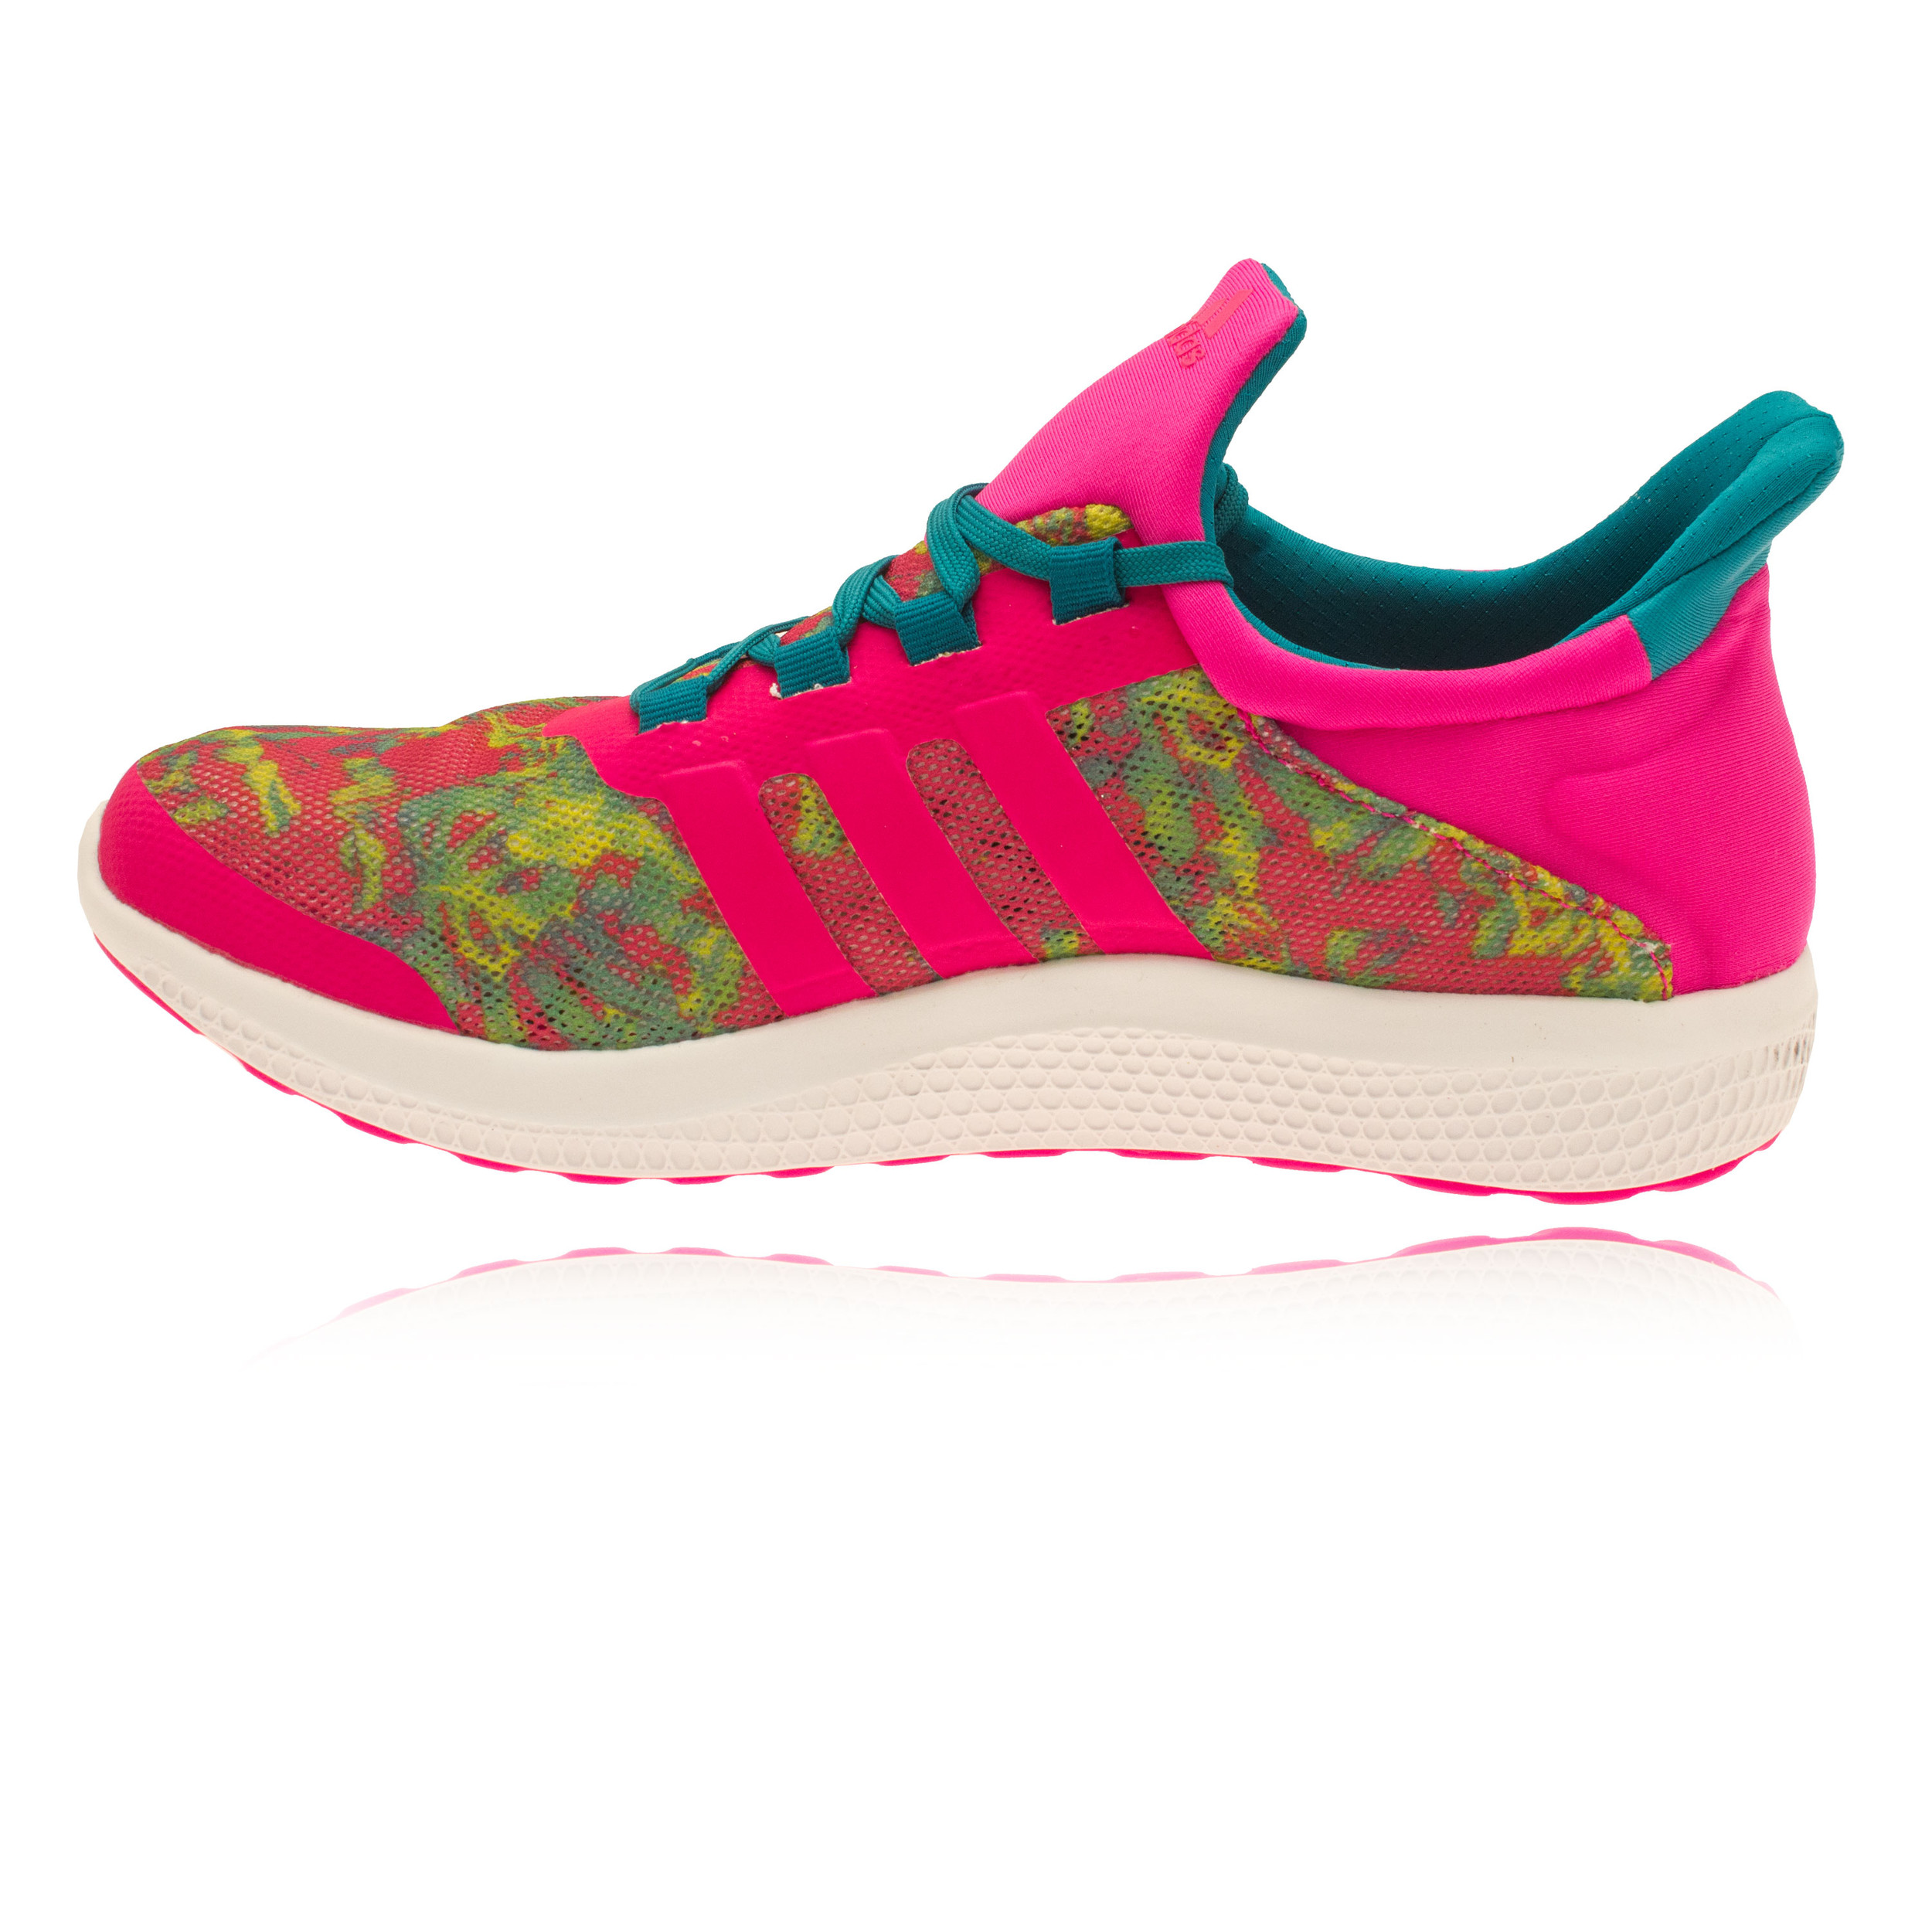 adidas cc sonic womens pink green running sports shoes